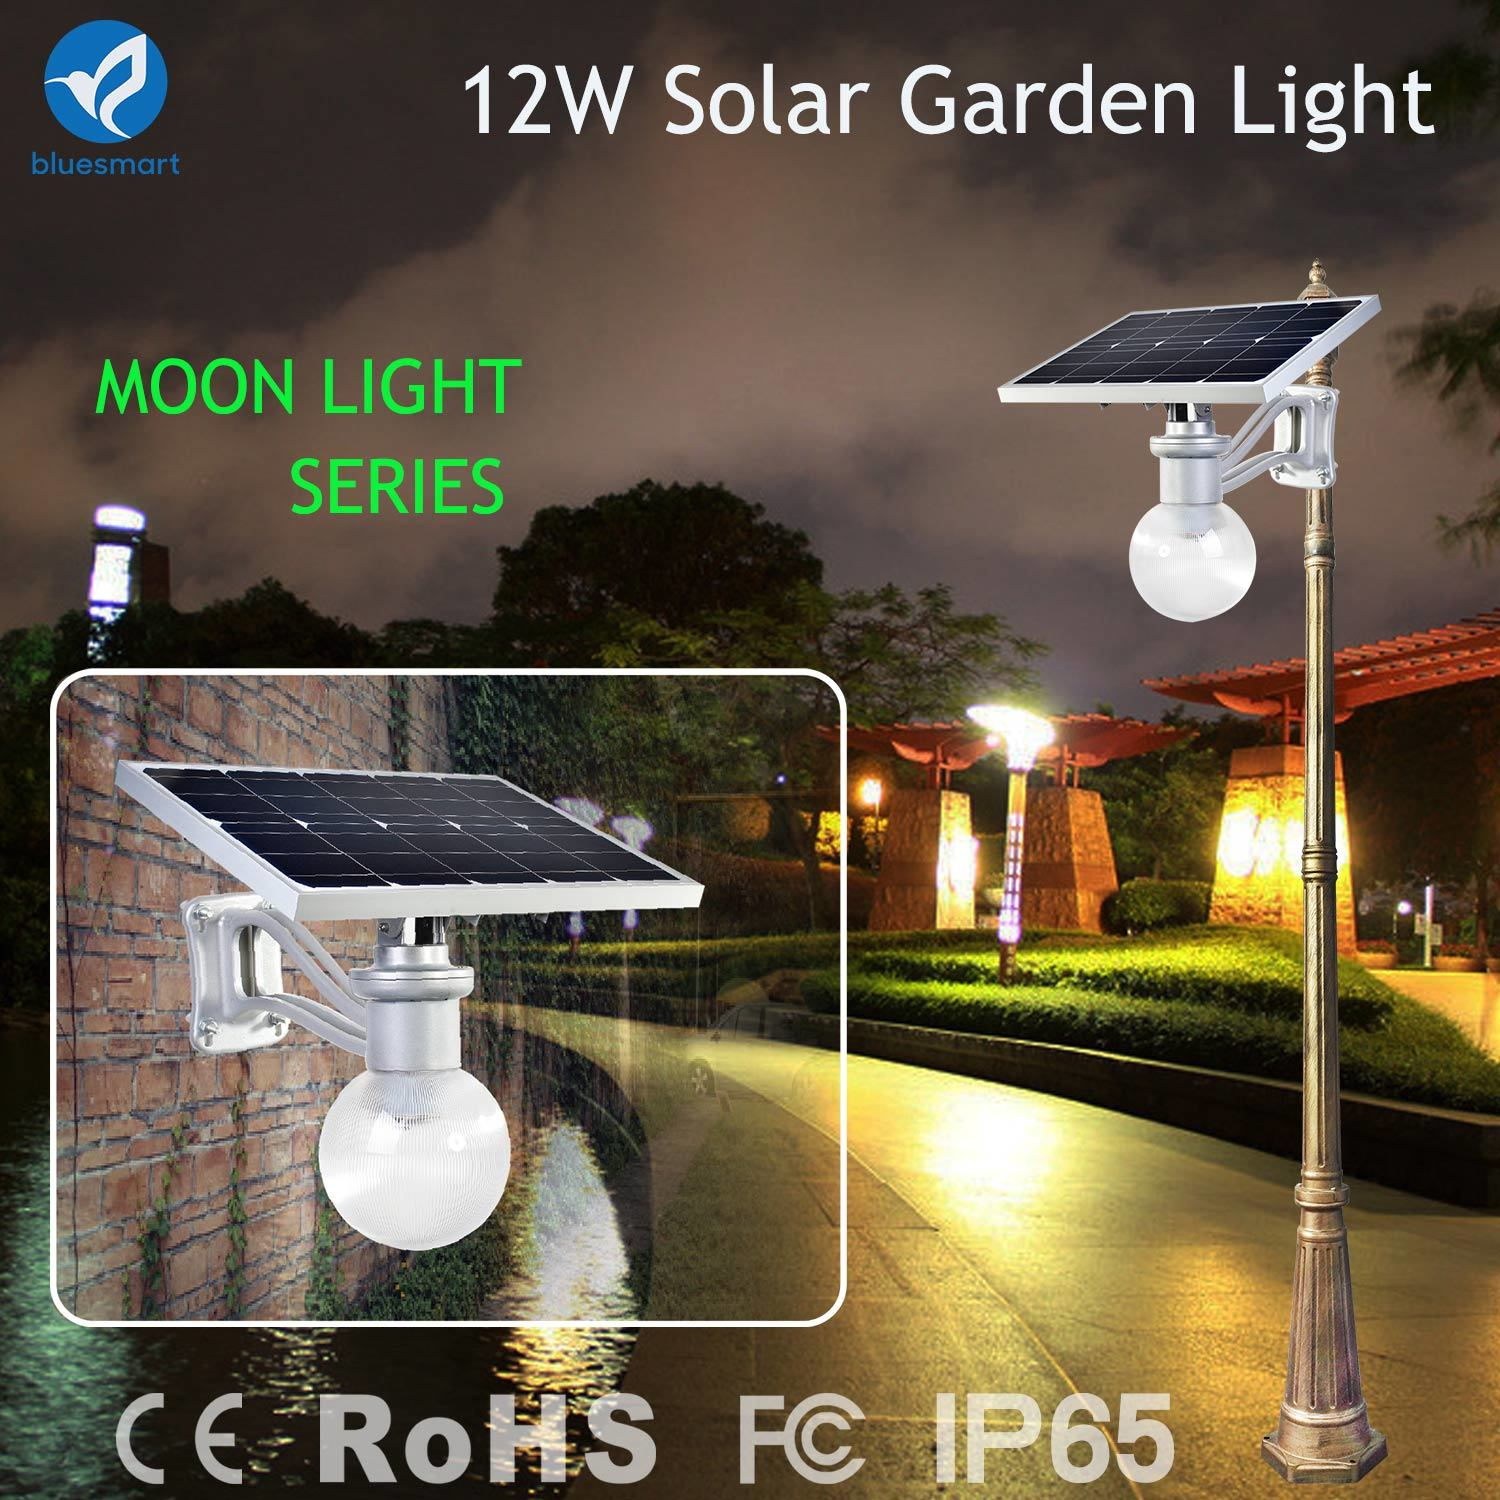 China Bluesmart 12w Solar Powered Garden Wall Lighting With Motion Lamp Light Sensor Led